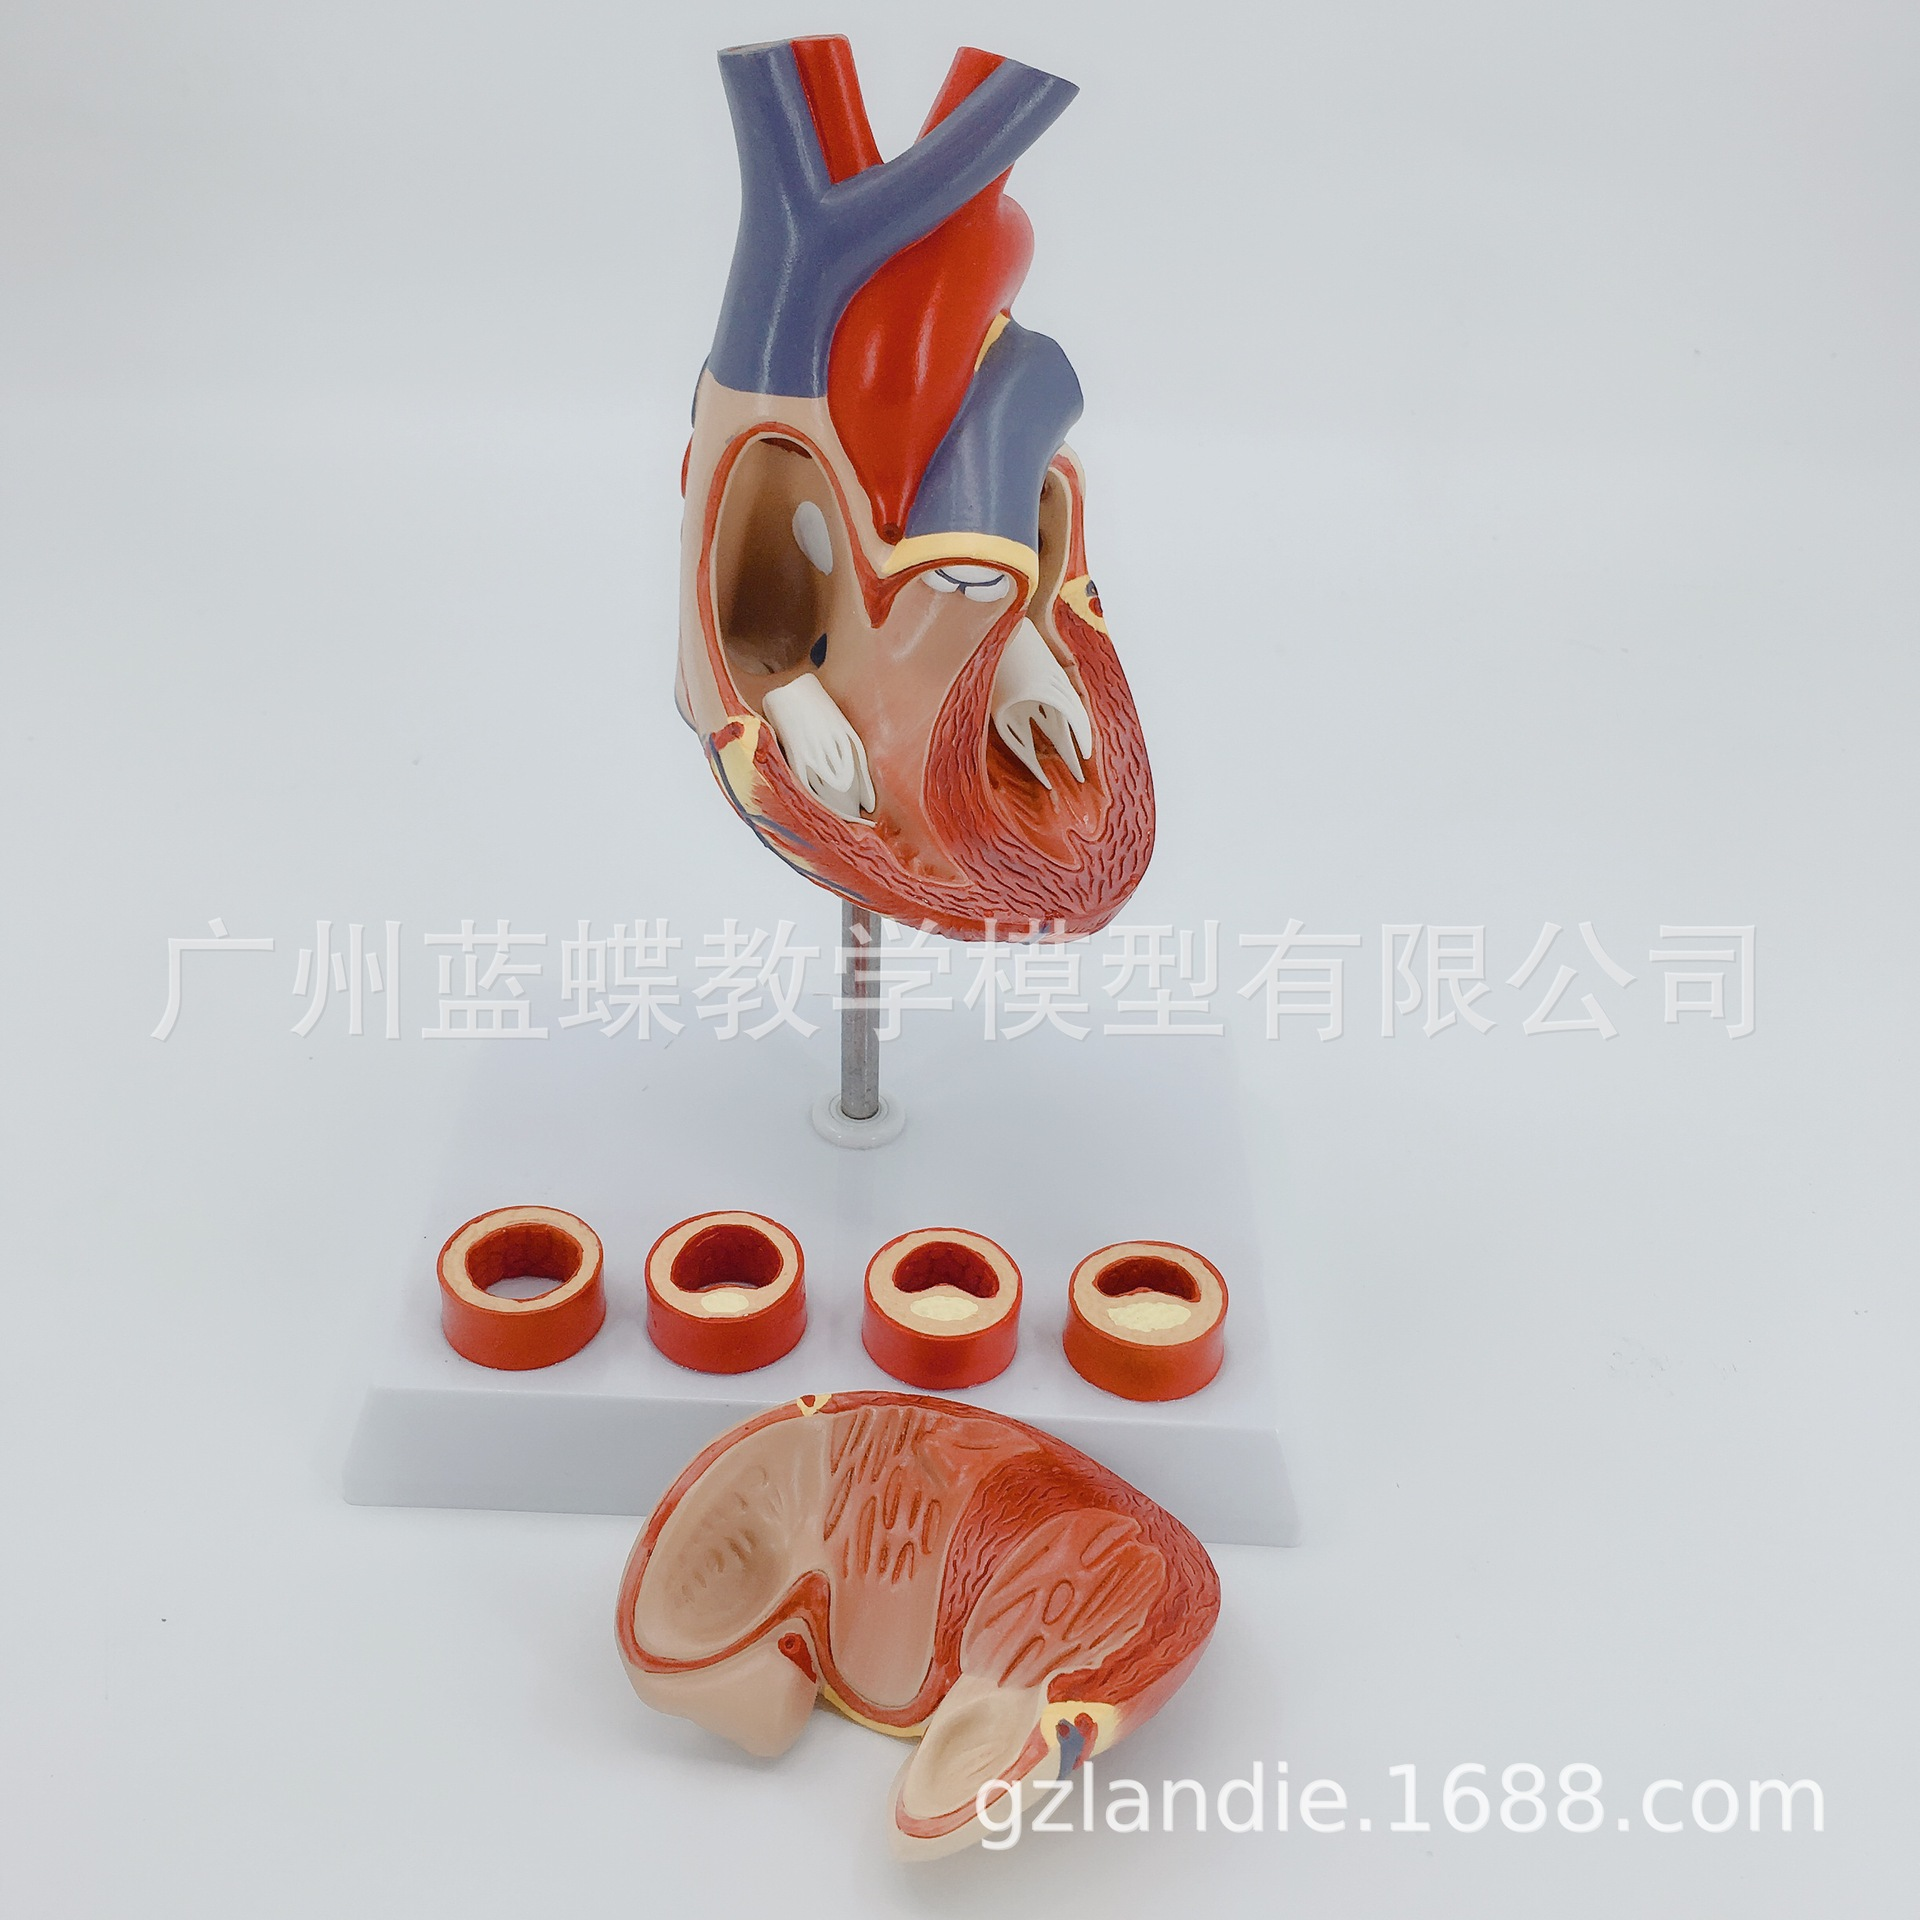 1:1 Life Size Human Heart Anatomy Model with 4 Stage Vascular Mounted on White Base Cardiac Learn School Medical Teaching Model image